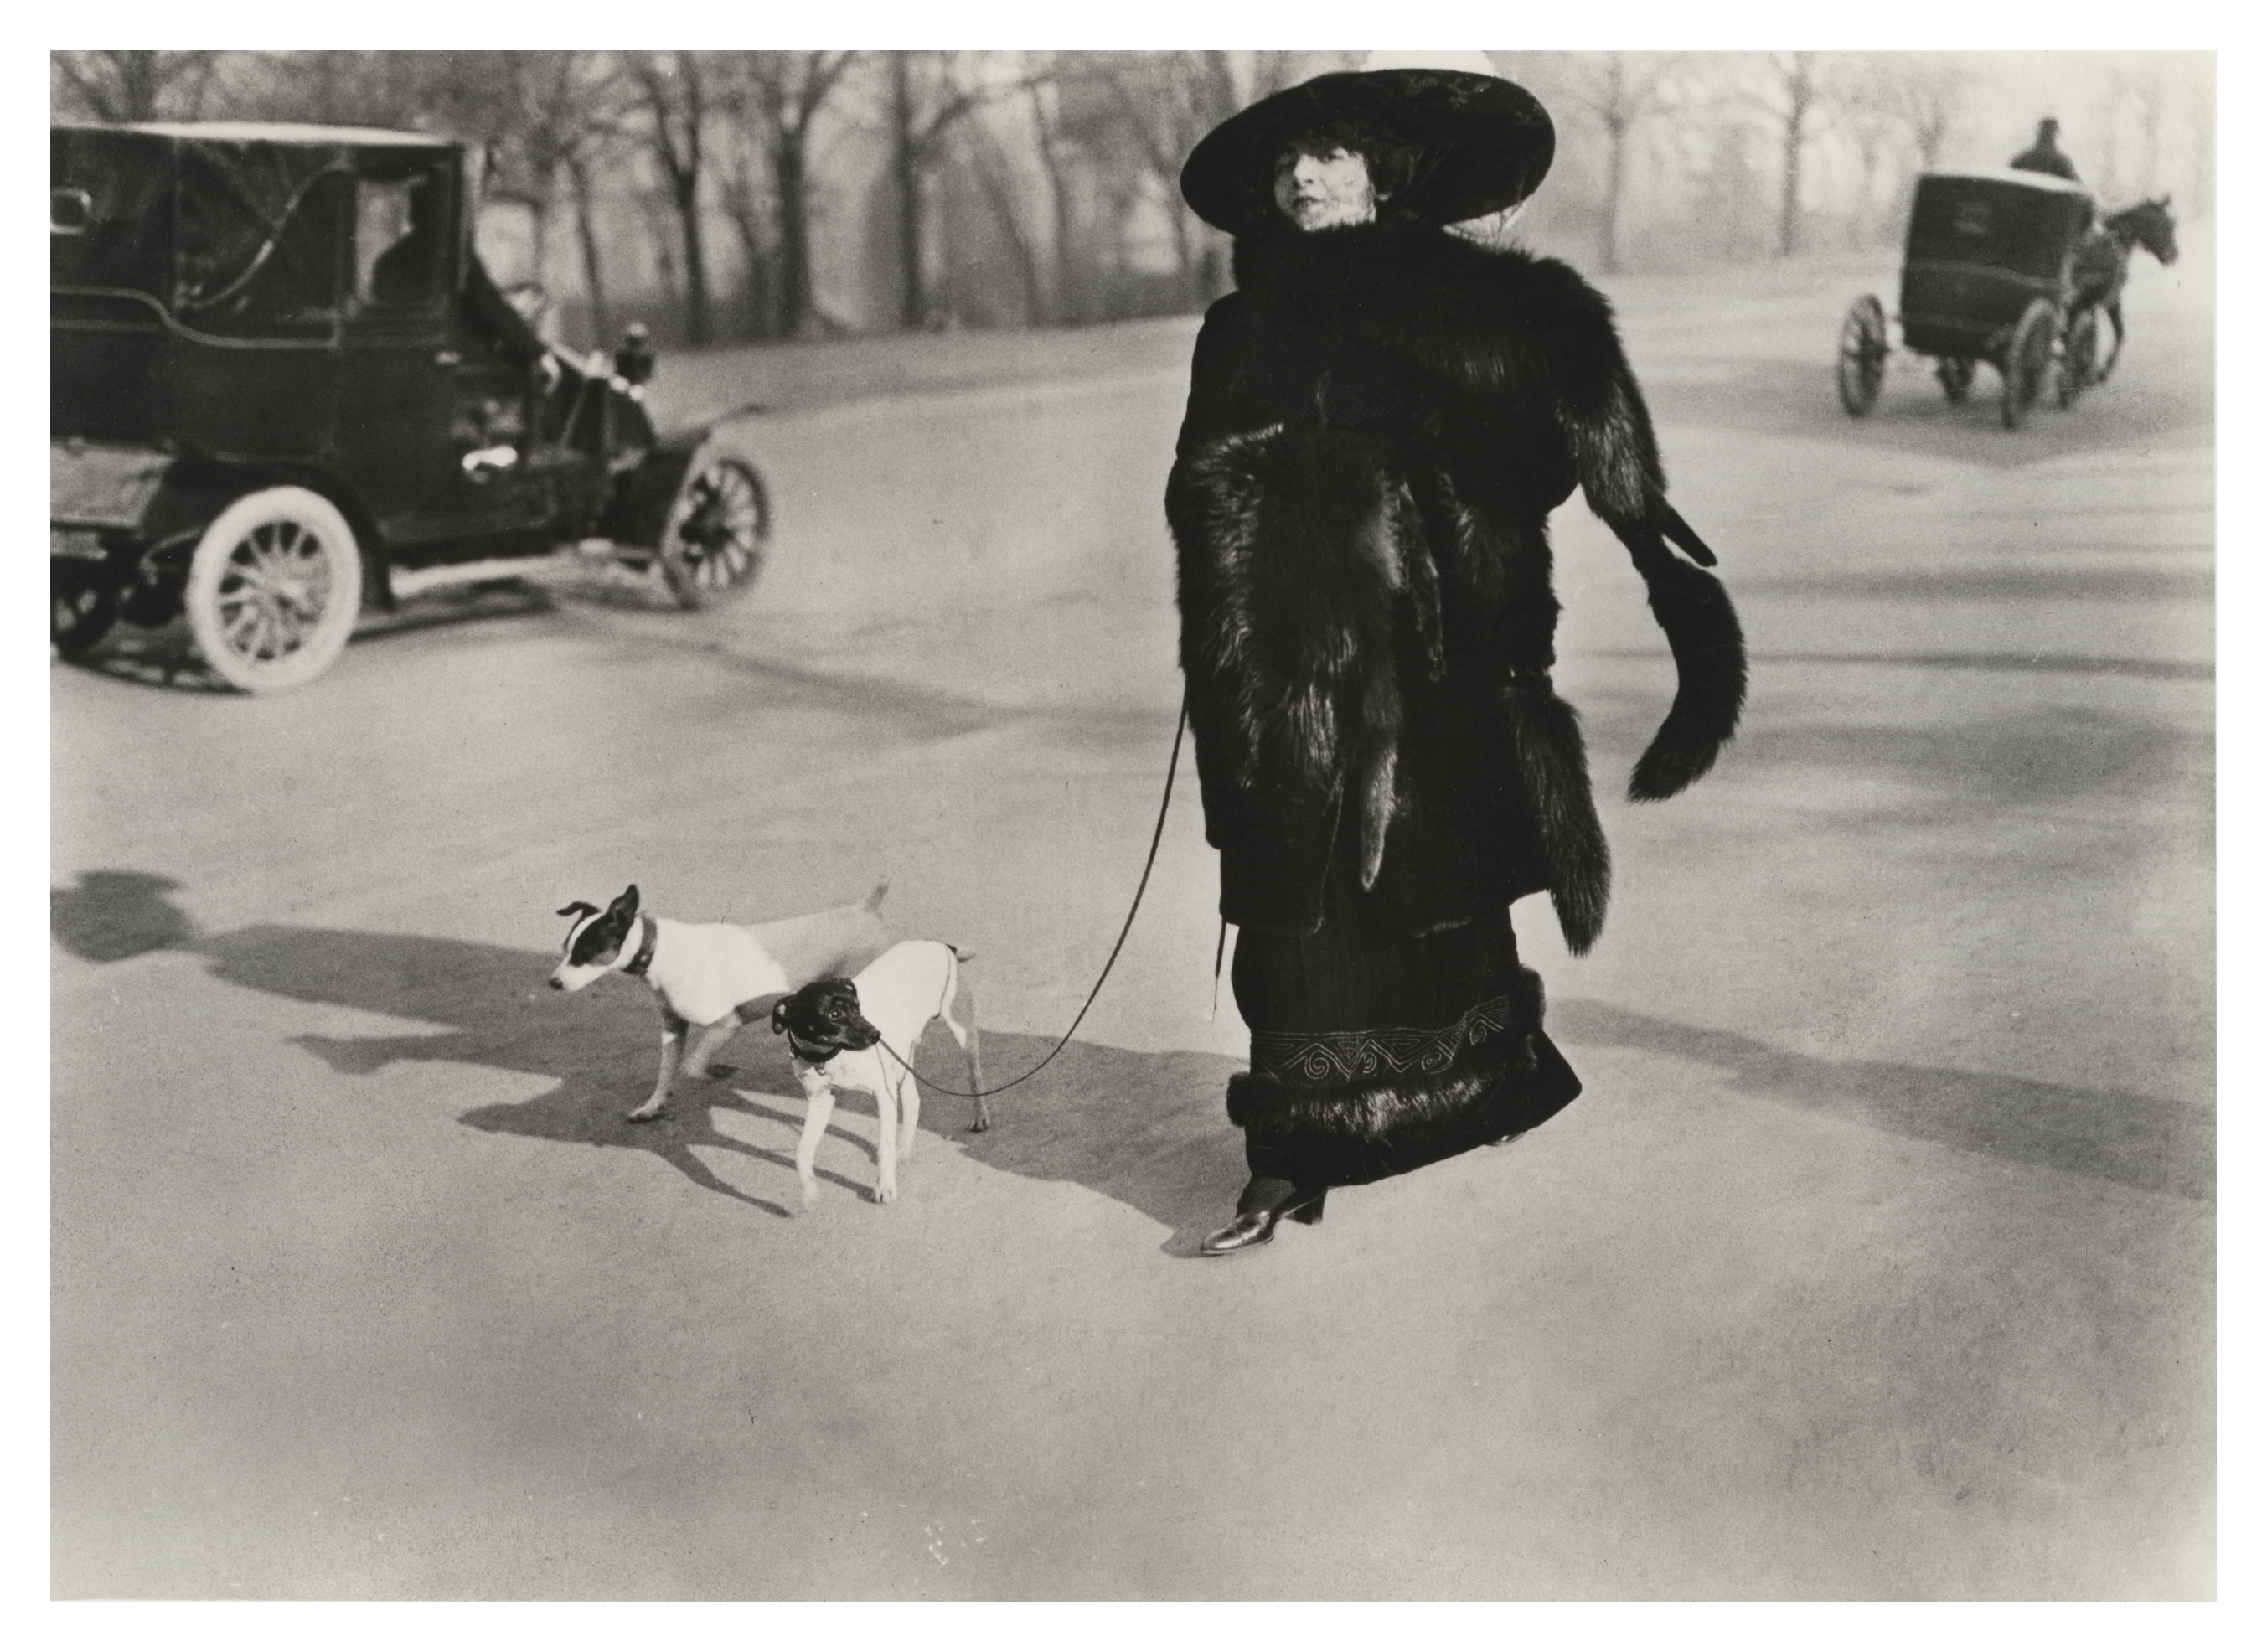 Lartigue had an eye that caught a changing world on the fly. This foxy lady of 1911—decked in dead foxes down to the ankles—displays the over-wrapped, woman-as-parade-float style that will soon become as obsolete as the horse-drawn carriage receding in the distance.